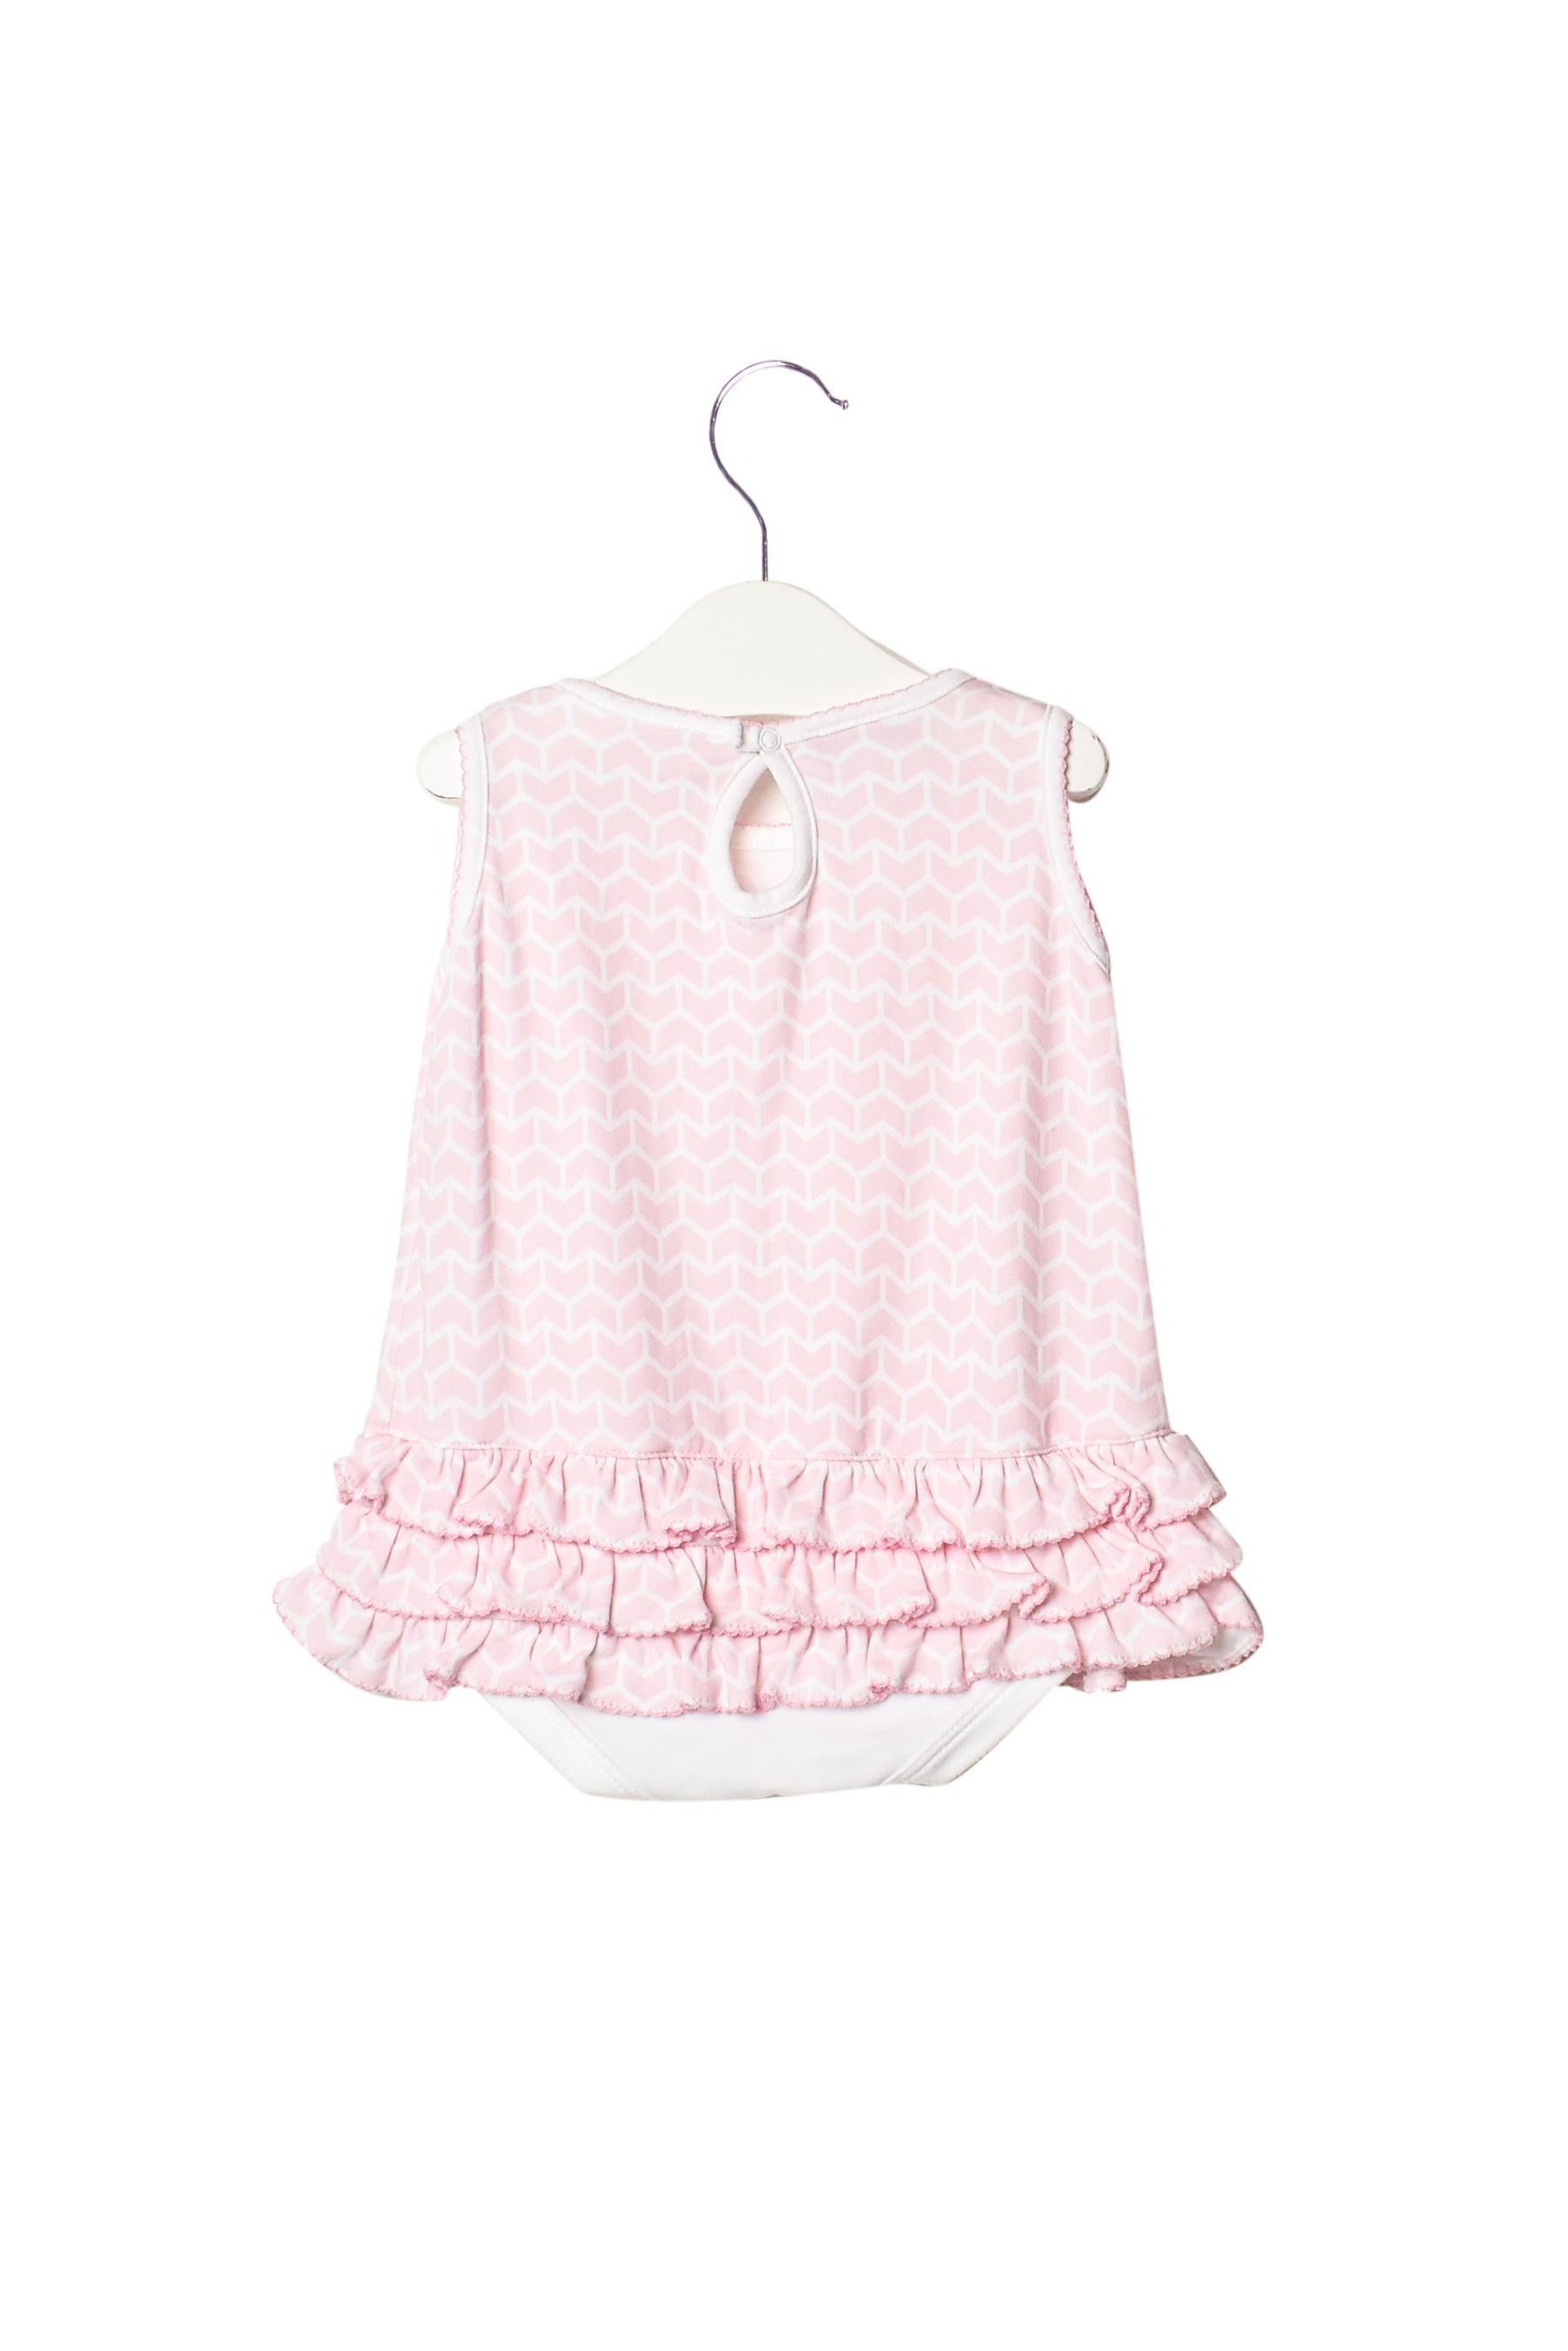 Magnolia Baby at Retykle | Online Shopping Discount Baby & Kids Clothes Hong Kong